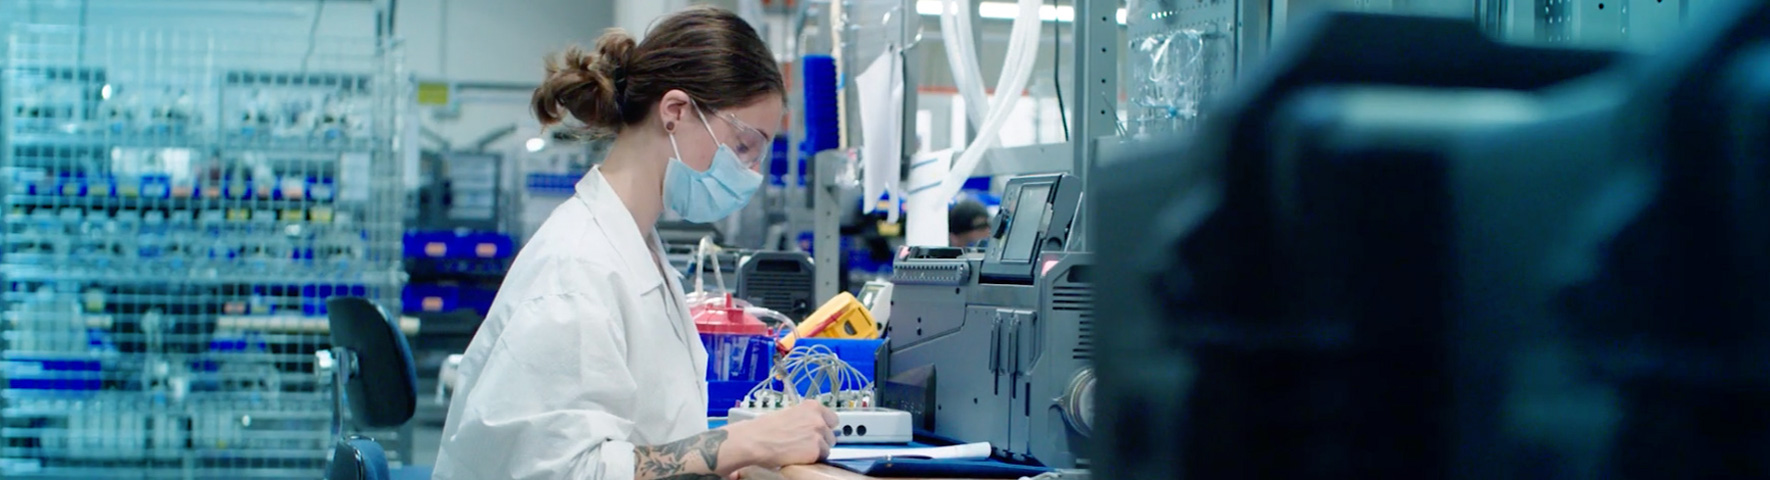 thornhill-manufacturing-factory-worker-1770x480